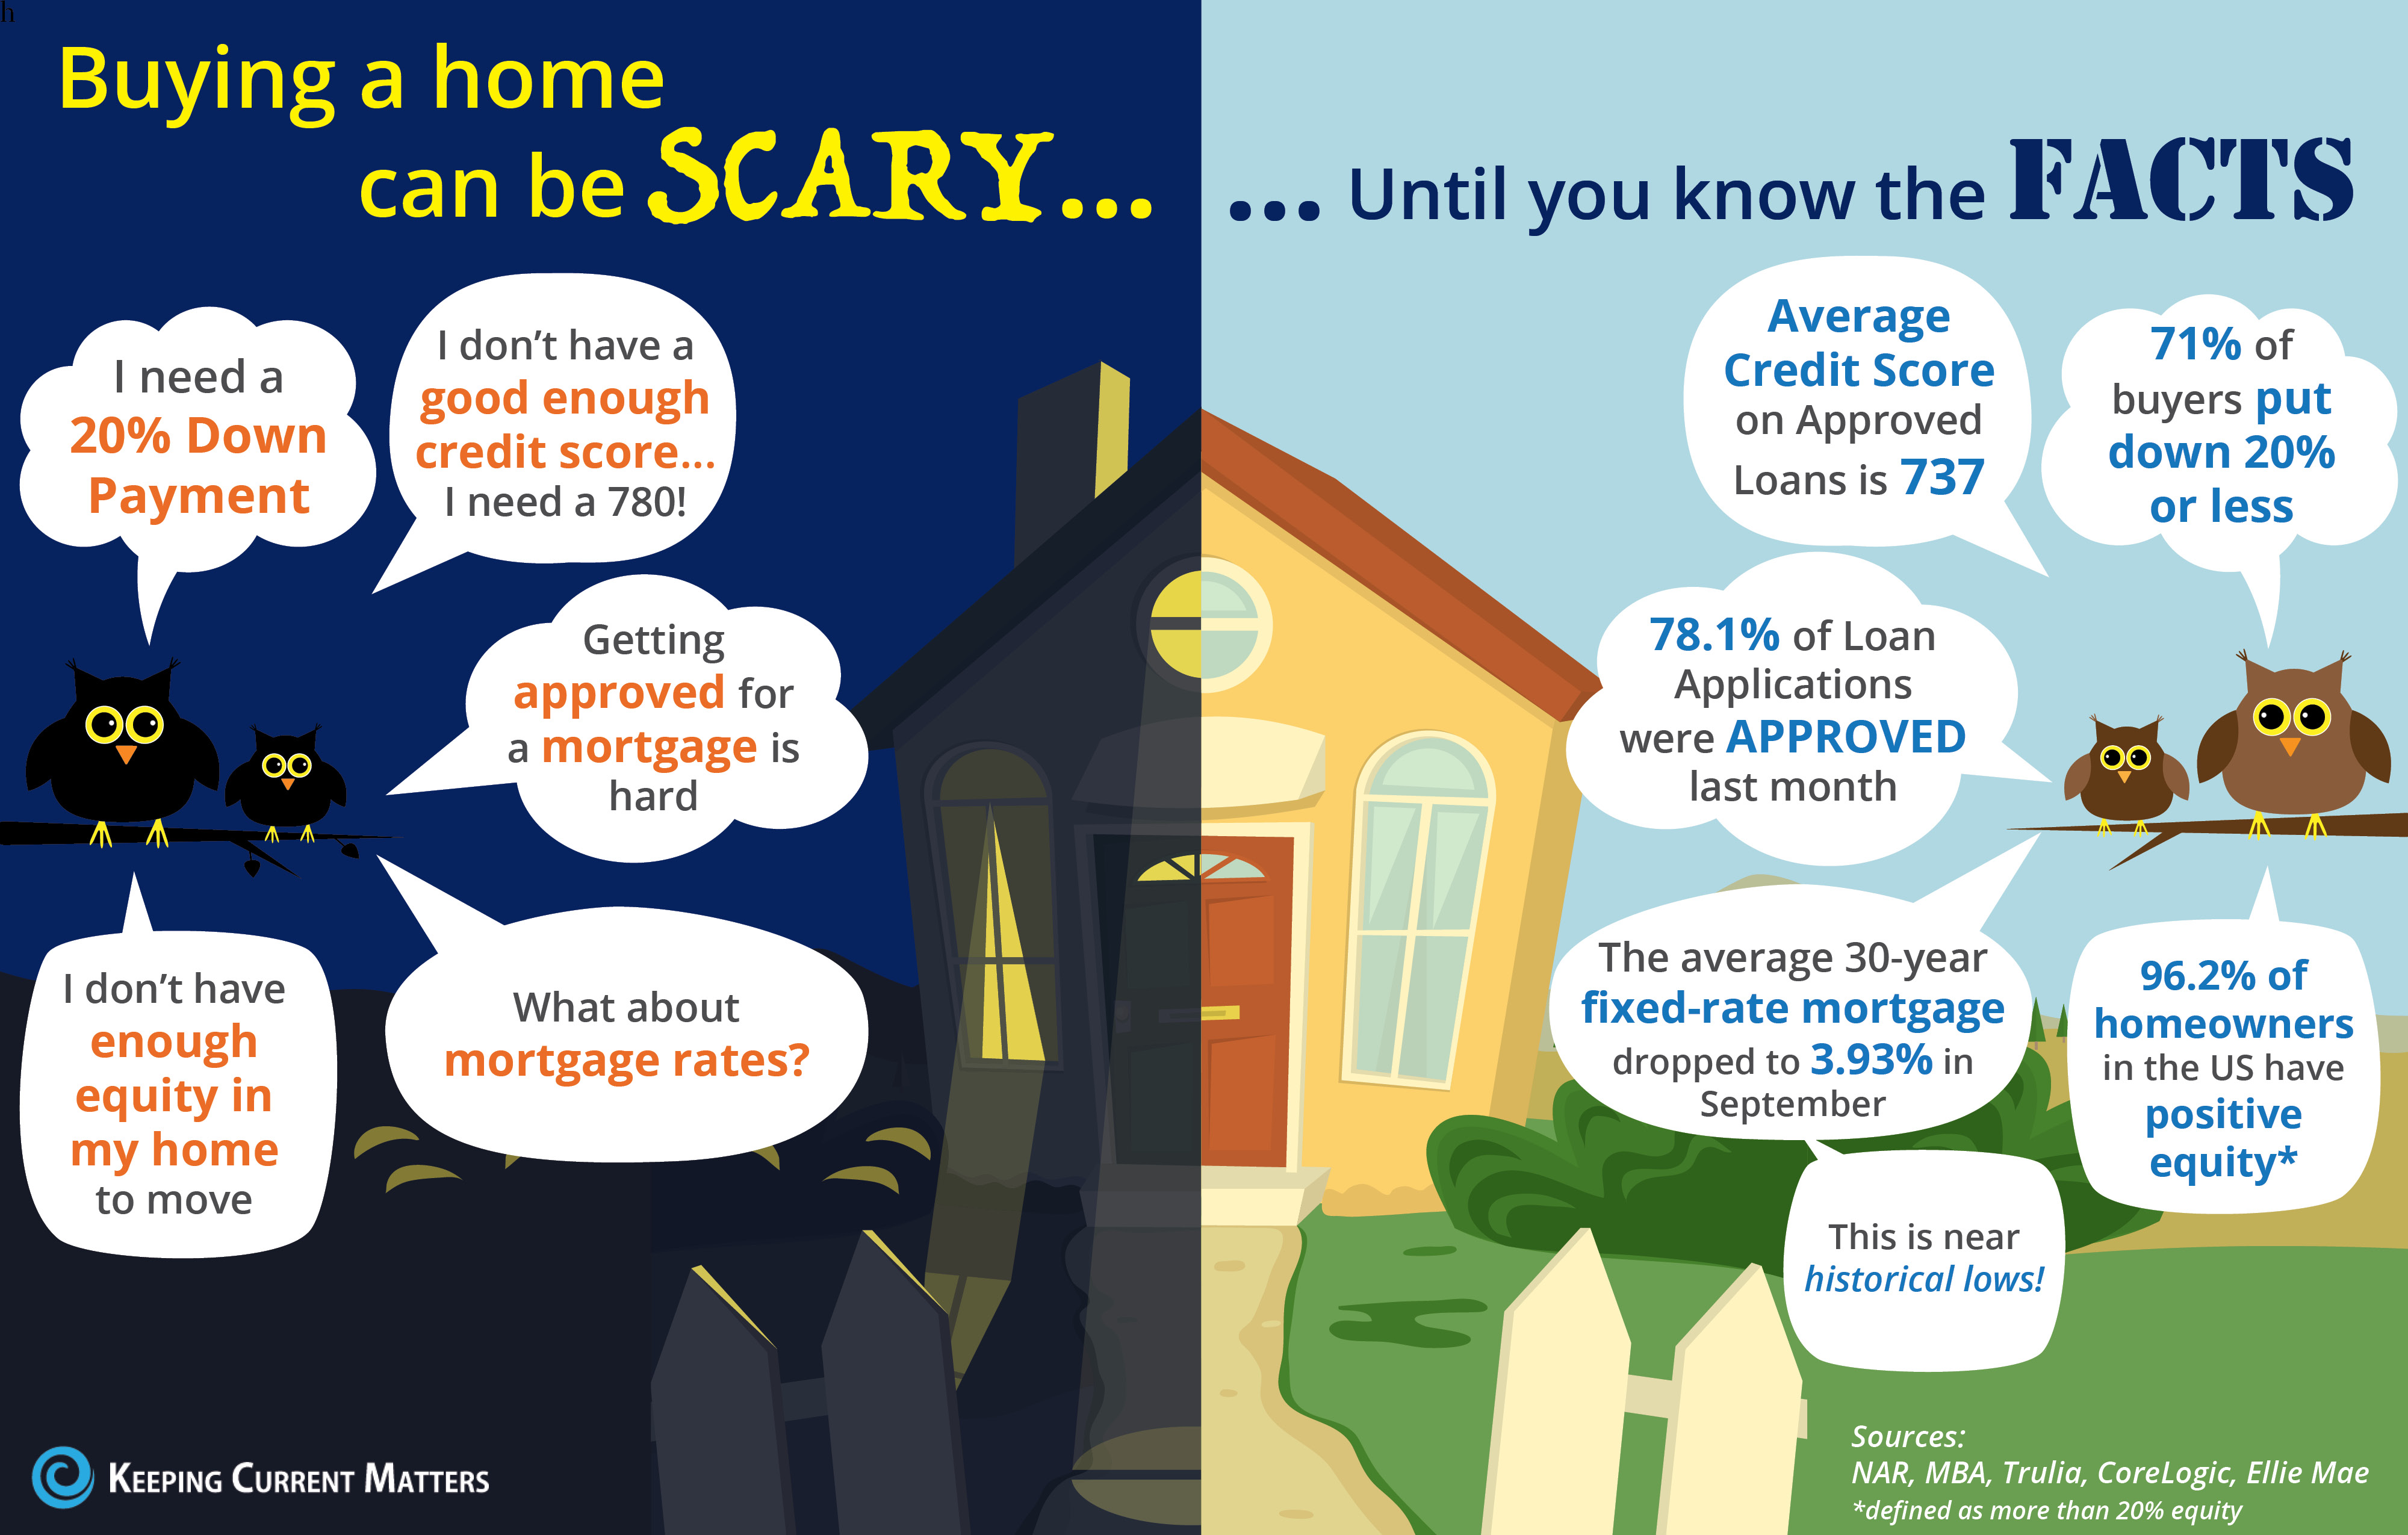 Buying a home can be SCARY…Until you know the FACTS [INFOGRAPHIC]   Keeping Current Matters